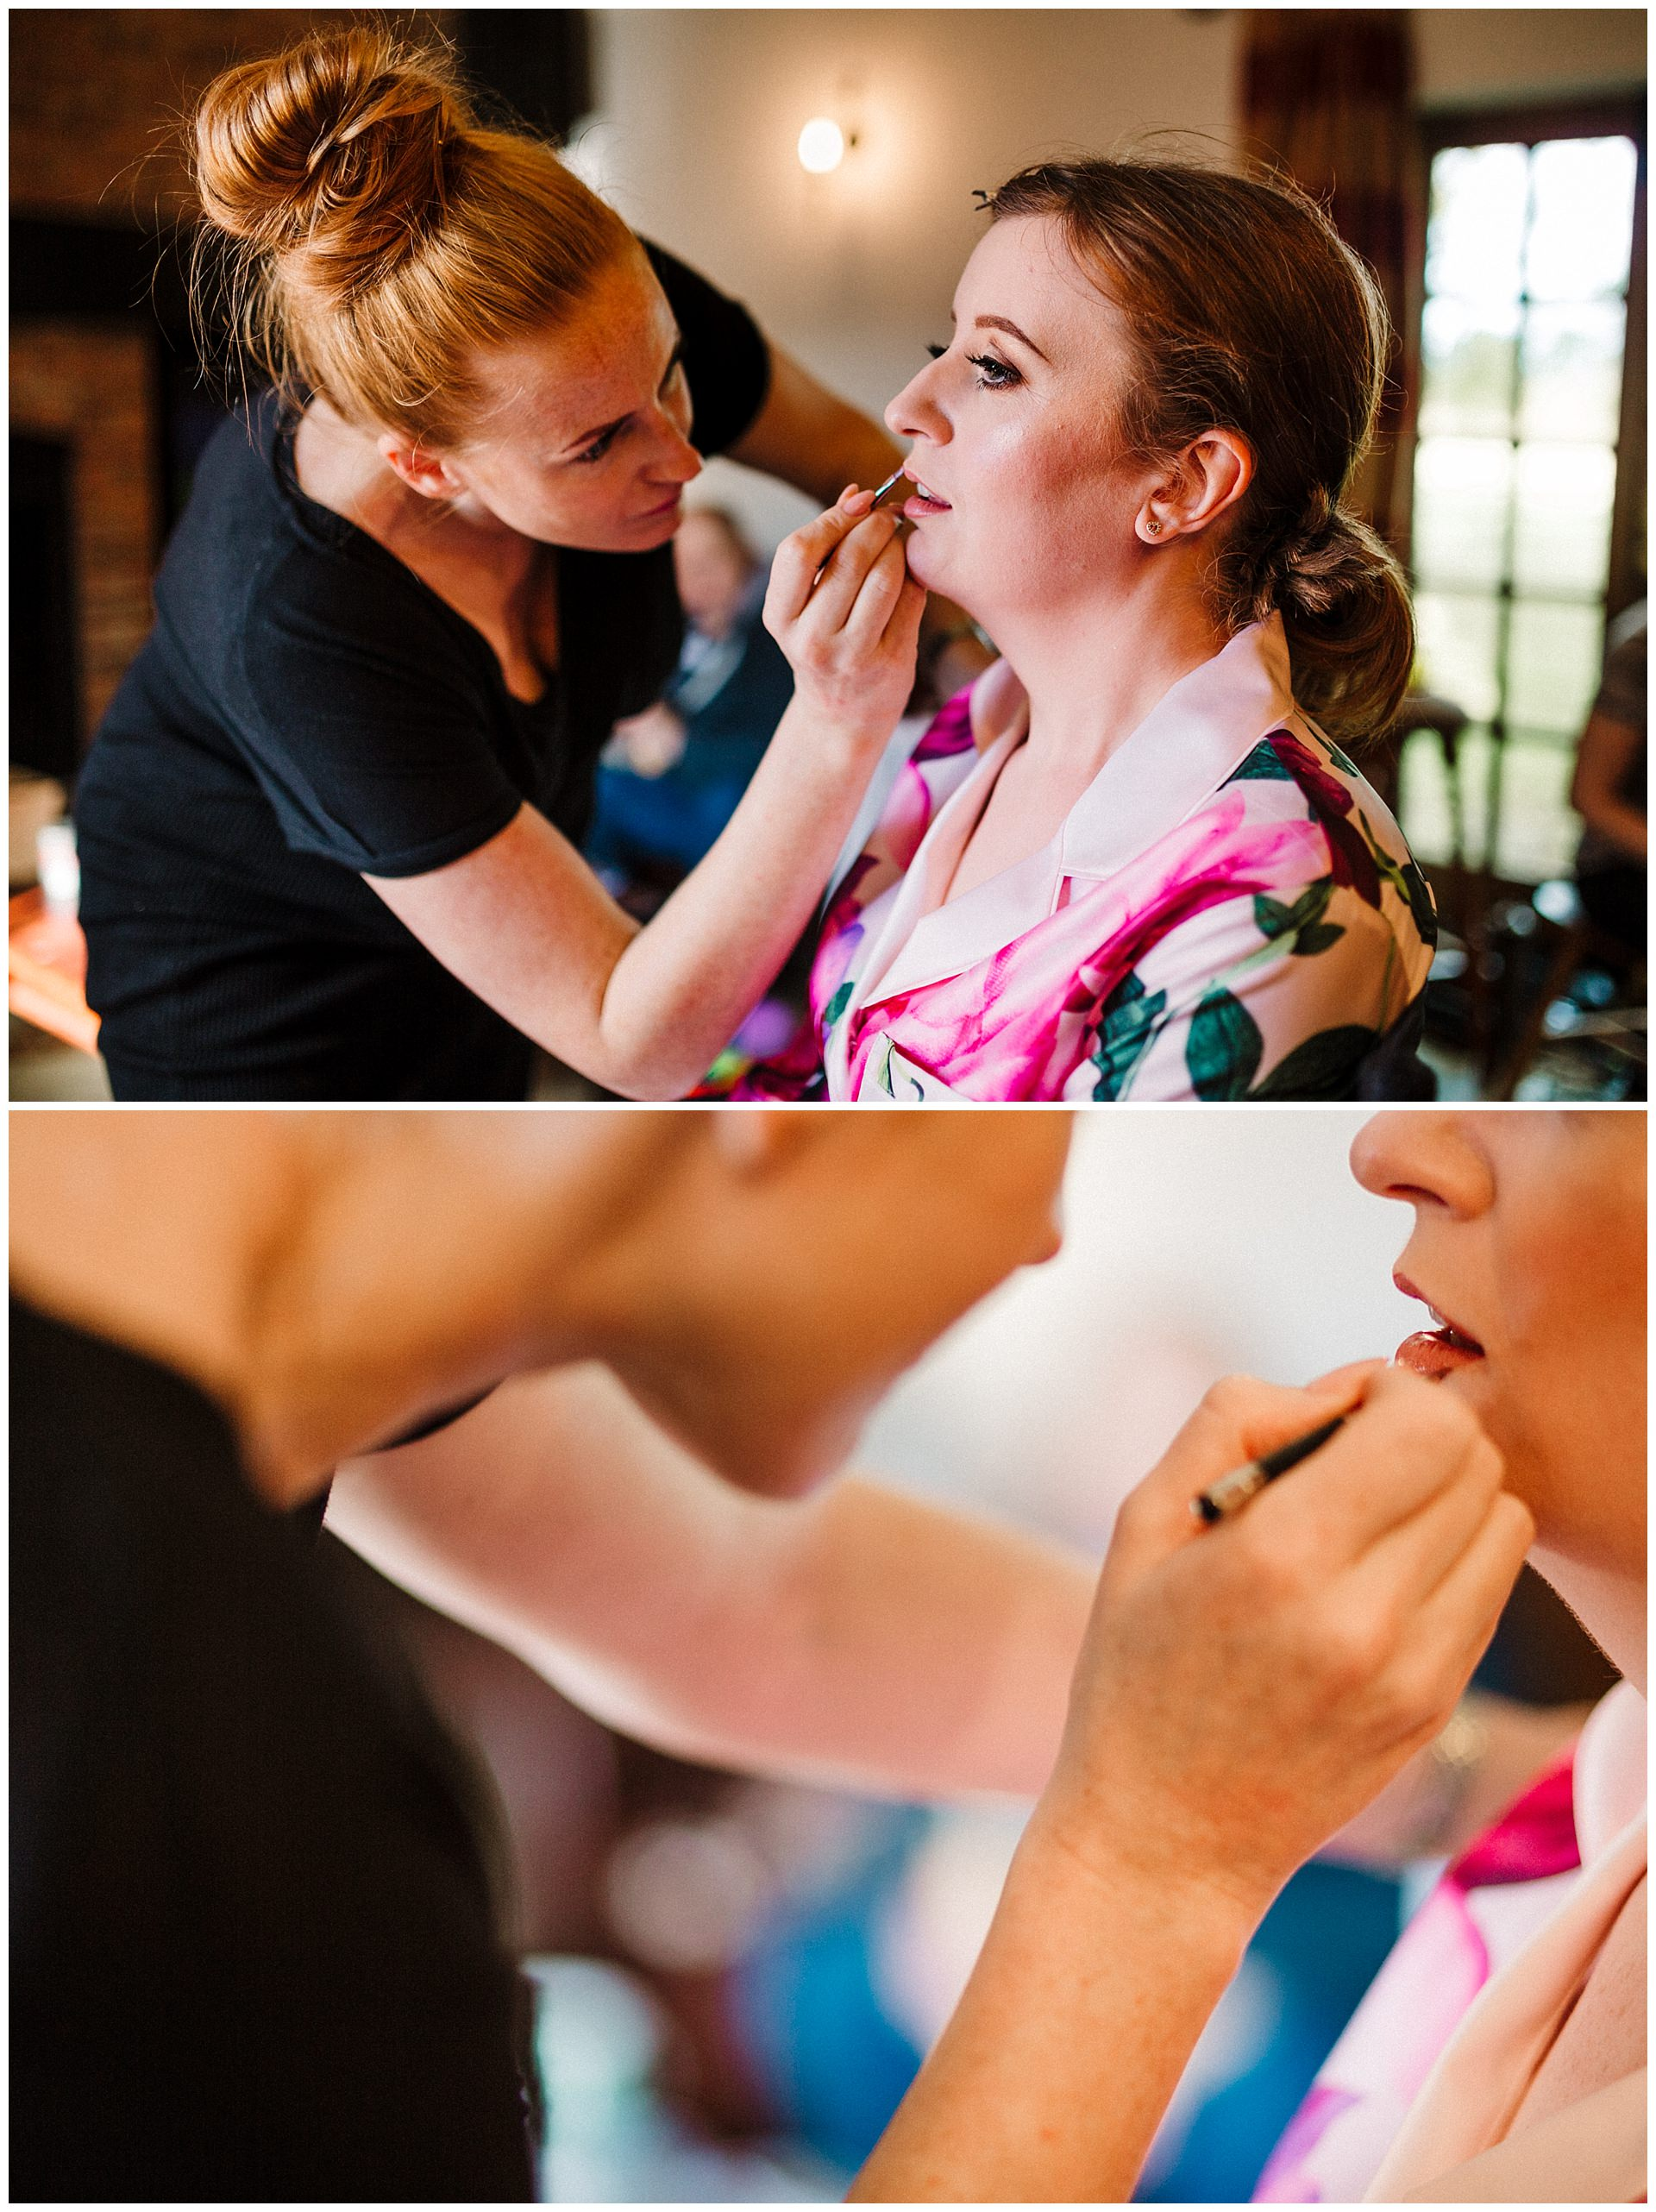 A makeup artist putting lipstick on a bride